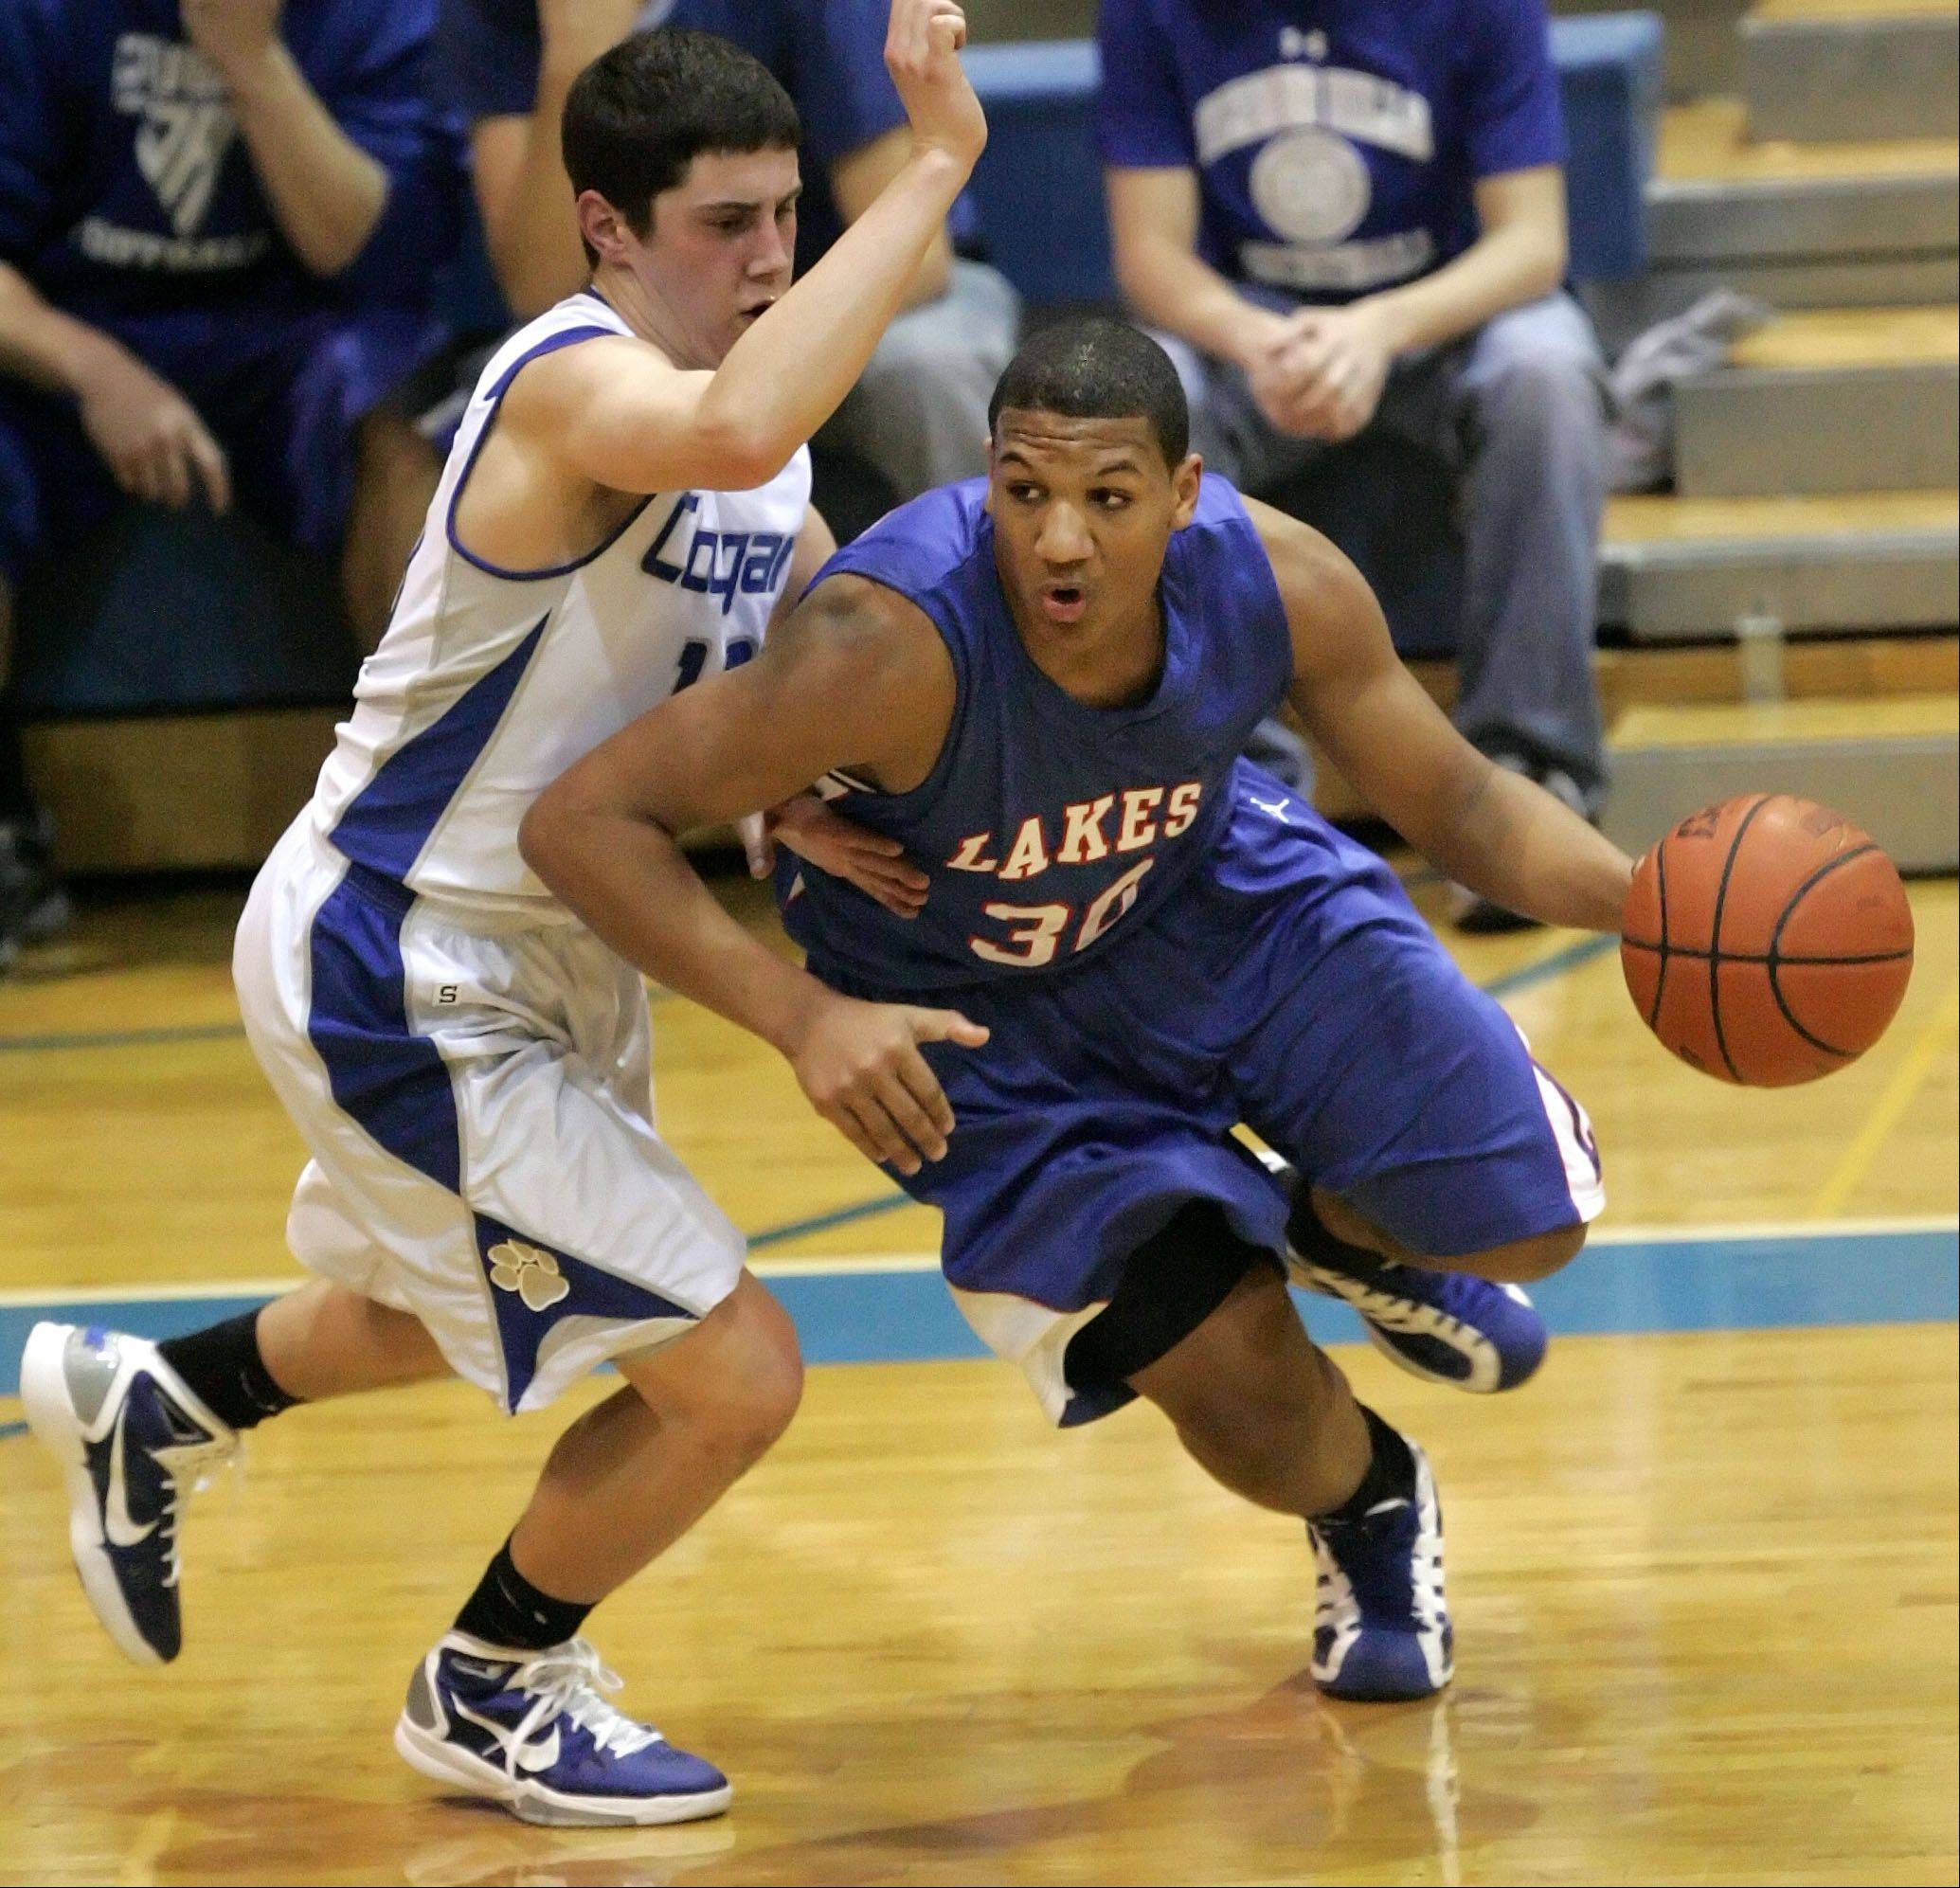 Lakes' Direll Clark, right, drives on Vernon Hills' Chris Argianas at Vernon Hills.